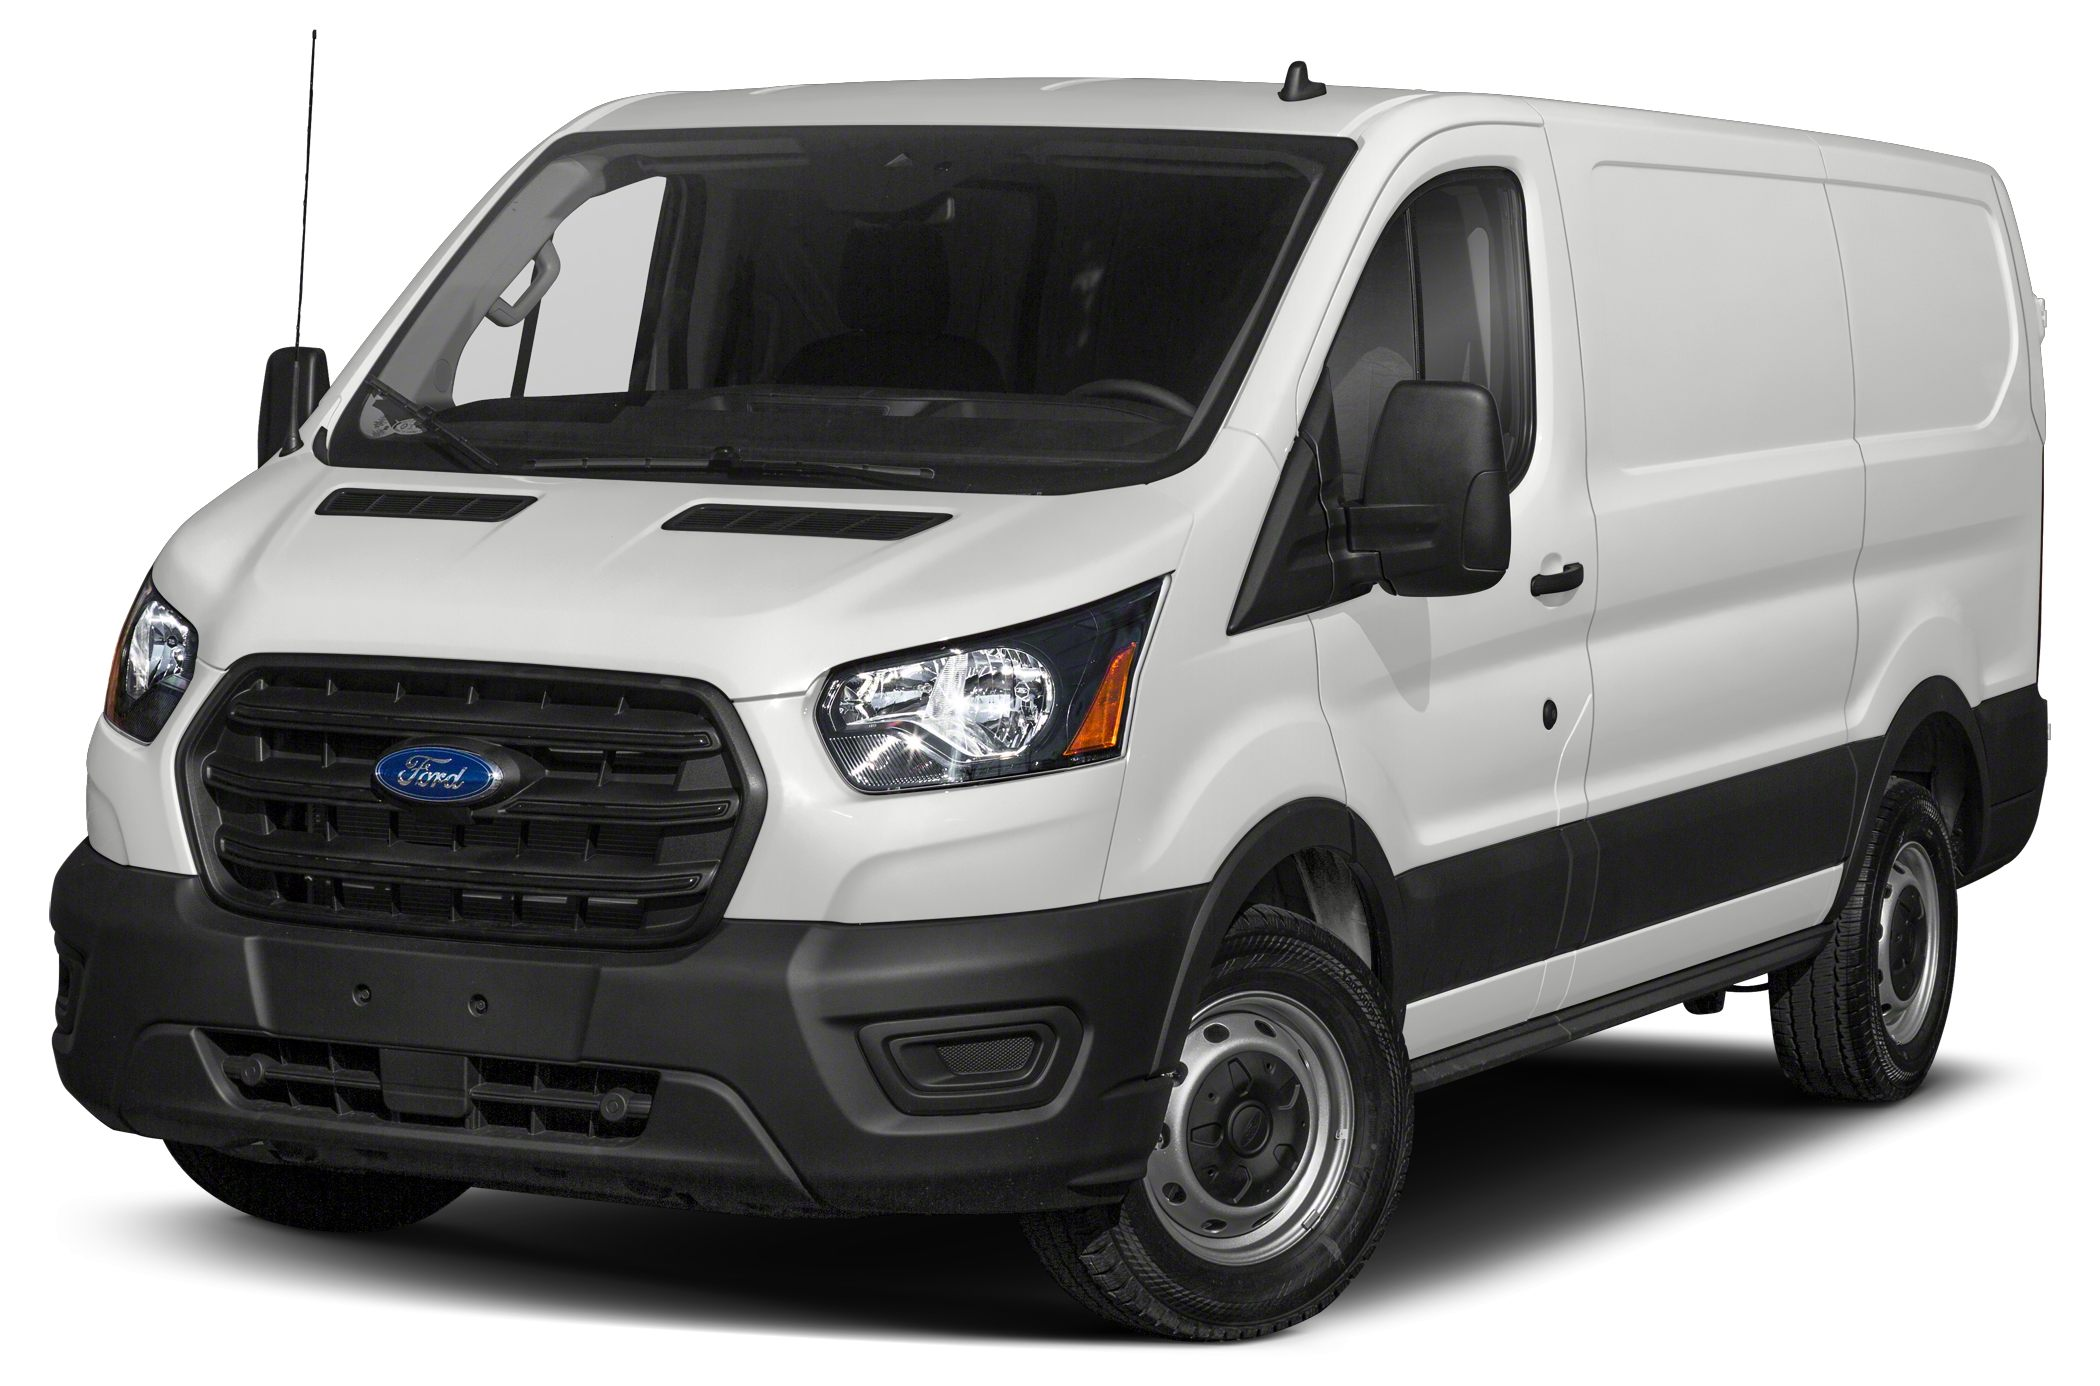 2020 ford transit 150 cargo base all wheel drive low roof van 148 in wb specs and prices autoblog